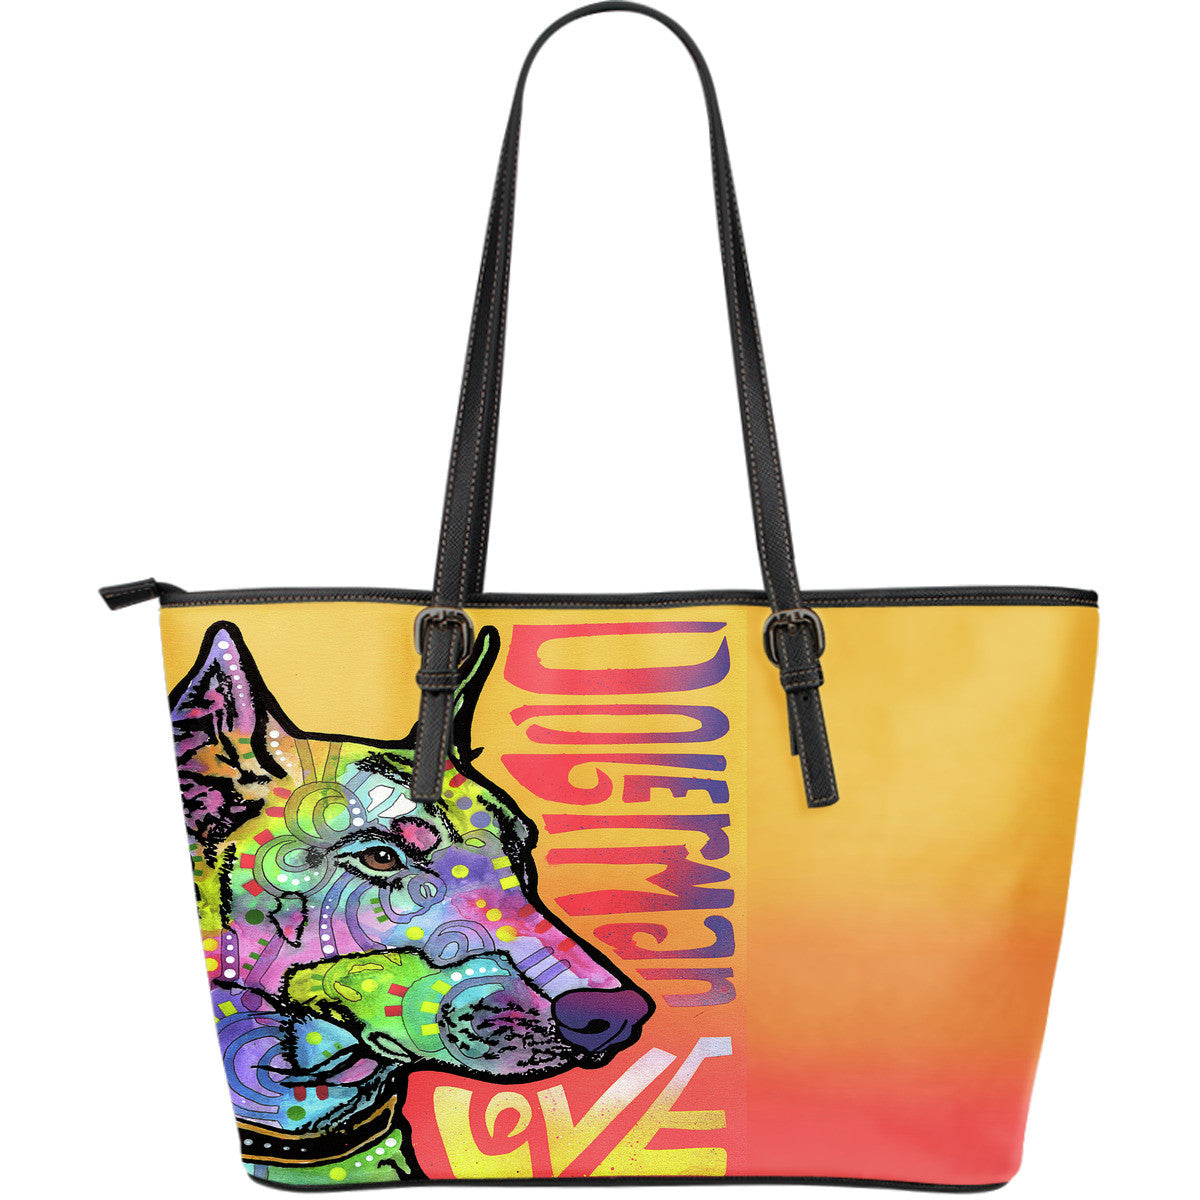 Doberman Love Leather Totes (Large)